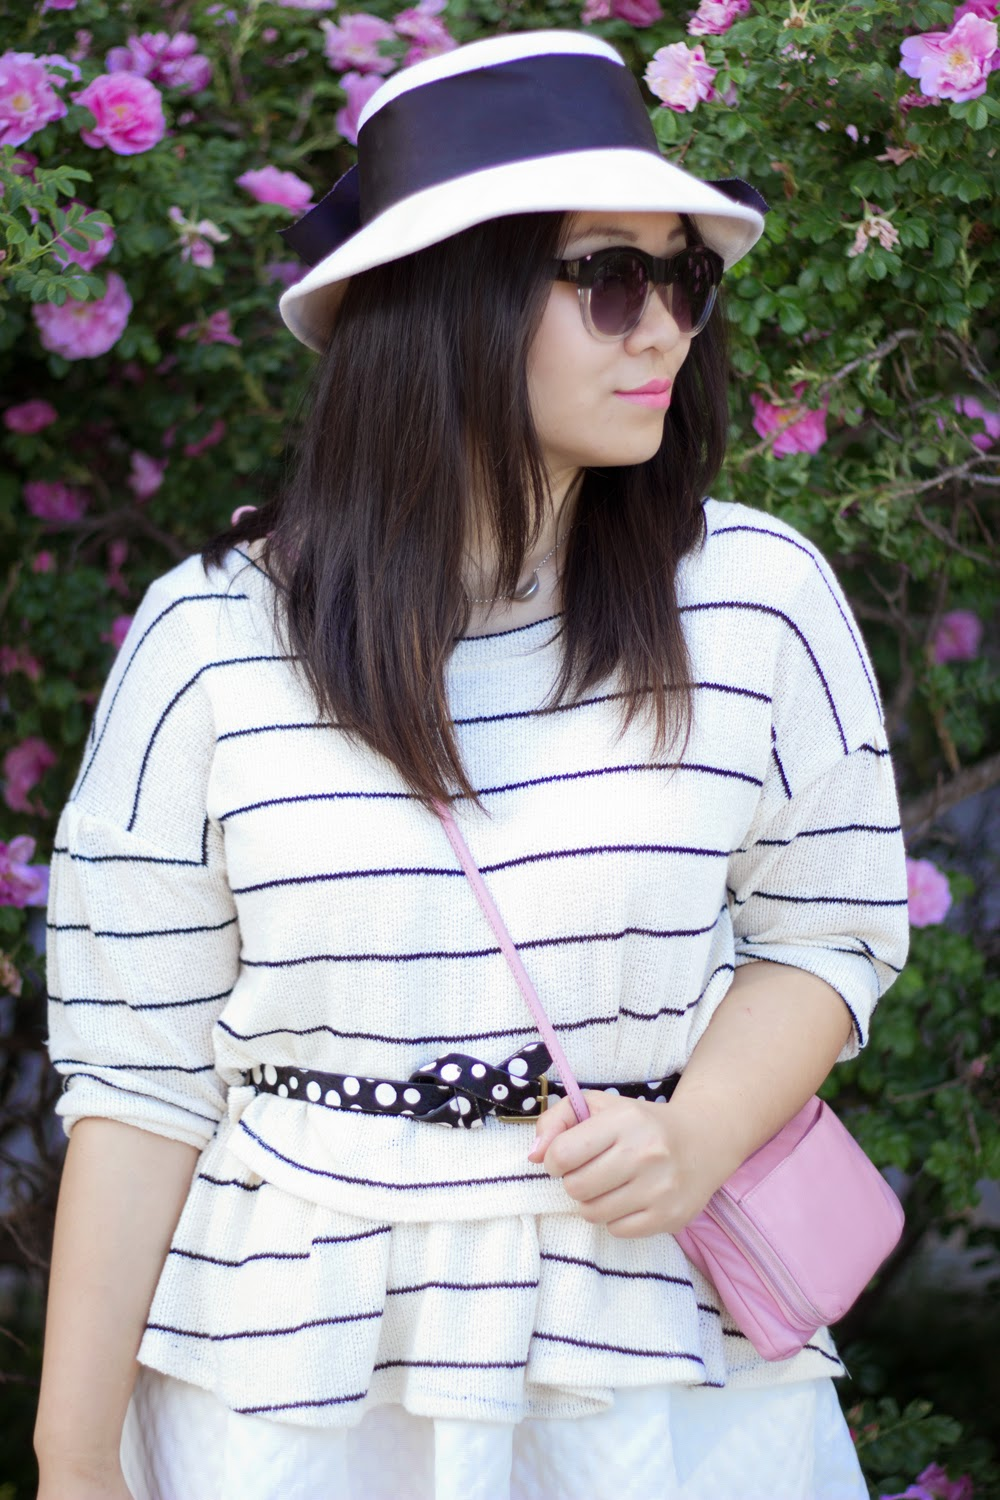 Anthropologie-Stripe-sweater, retro-hat-with-bow, BCBGeneration-sunnies